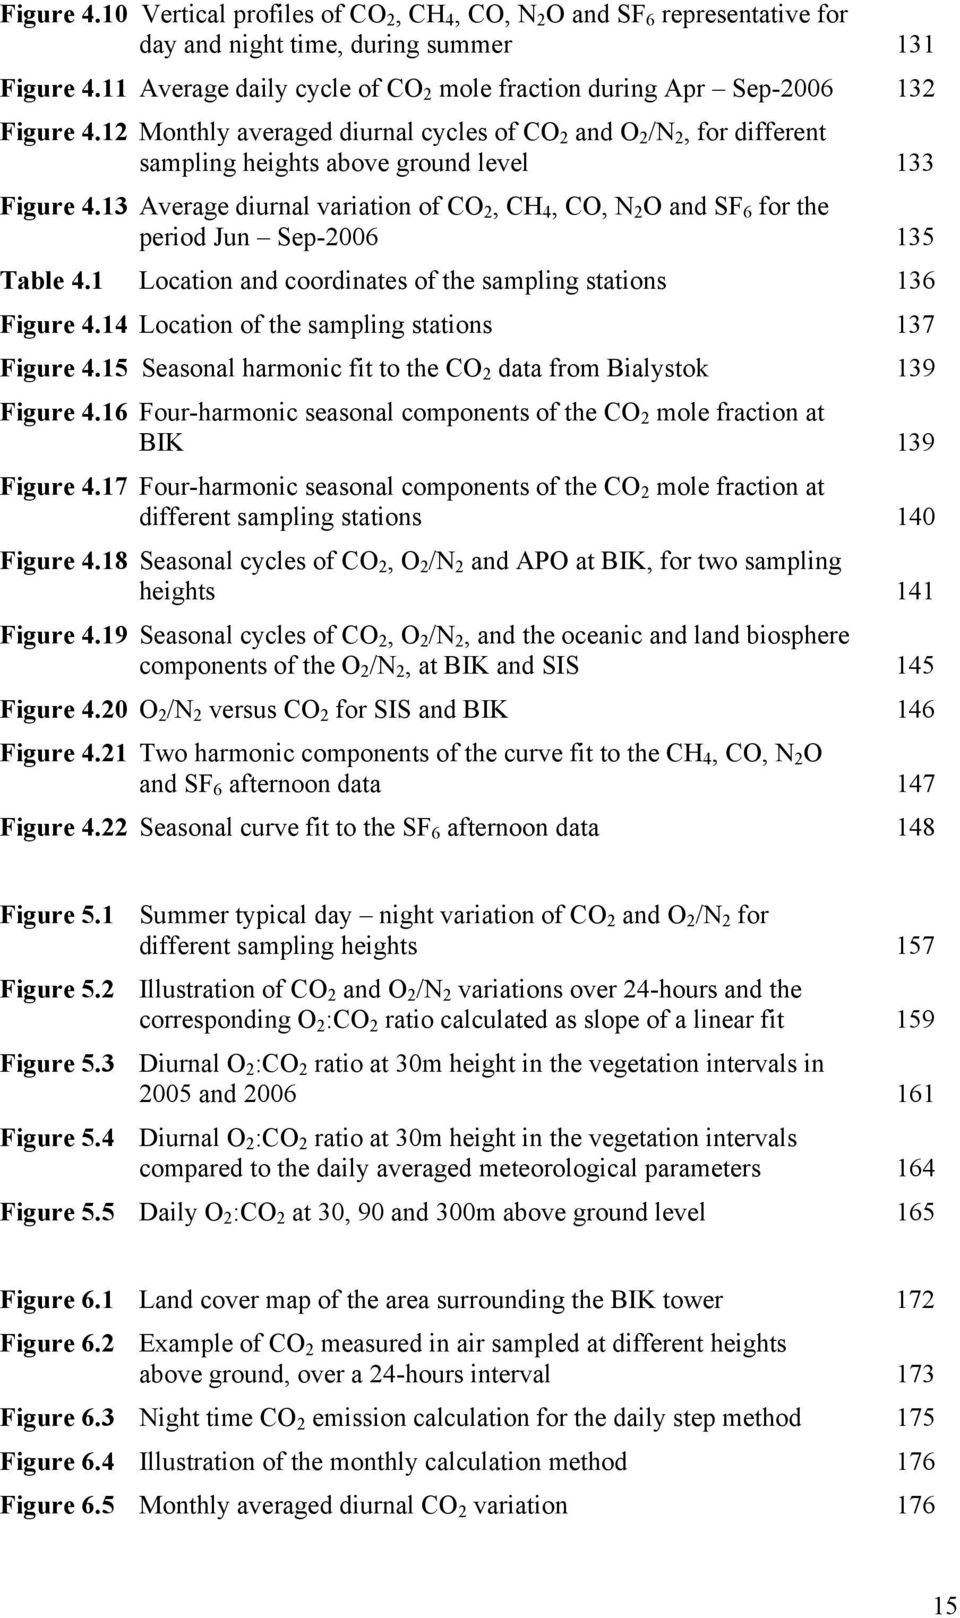 13 Average diurnal variation of CO 2, CH 4, CO, N 2 O and SF 6 for the period Jun Sep-2006 135 Table 4.1 Location and coordinates of the sampling stations 136 Figure 4.